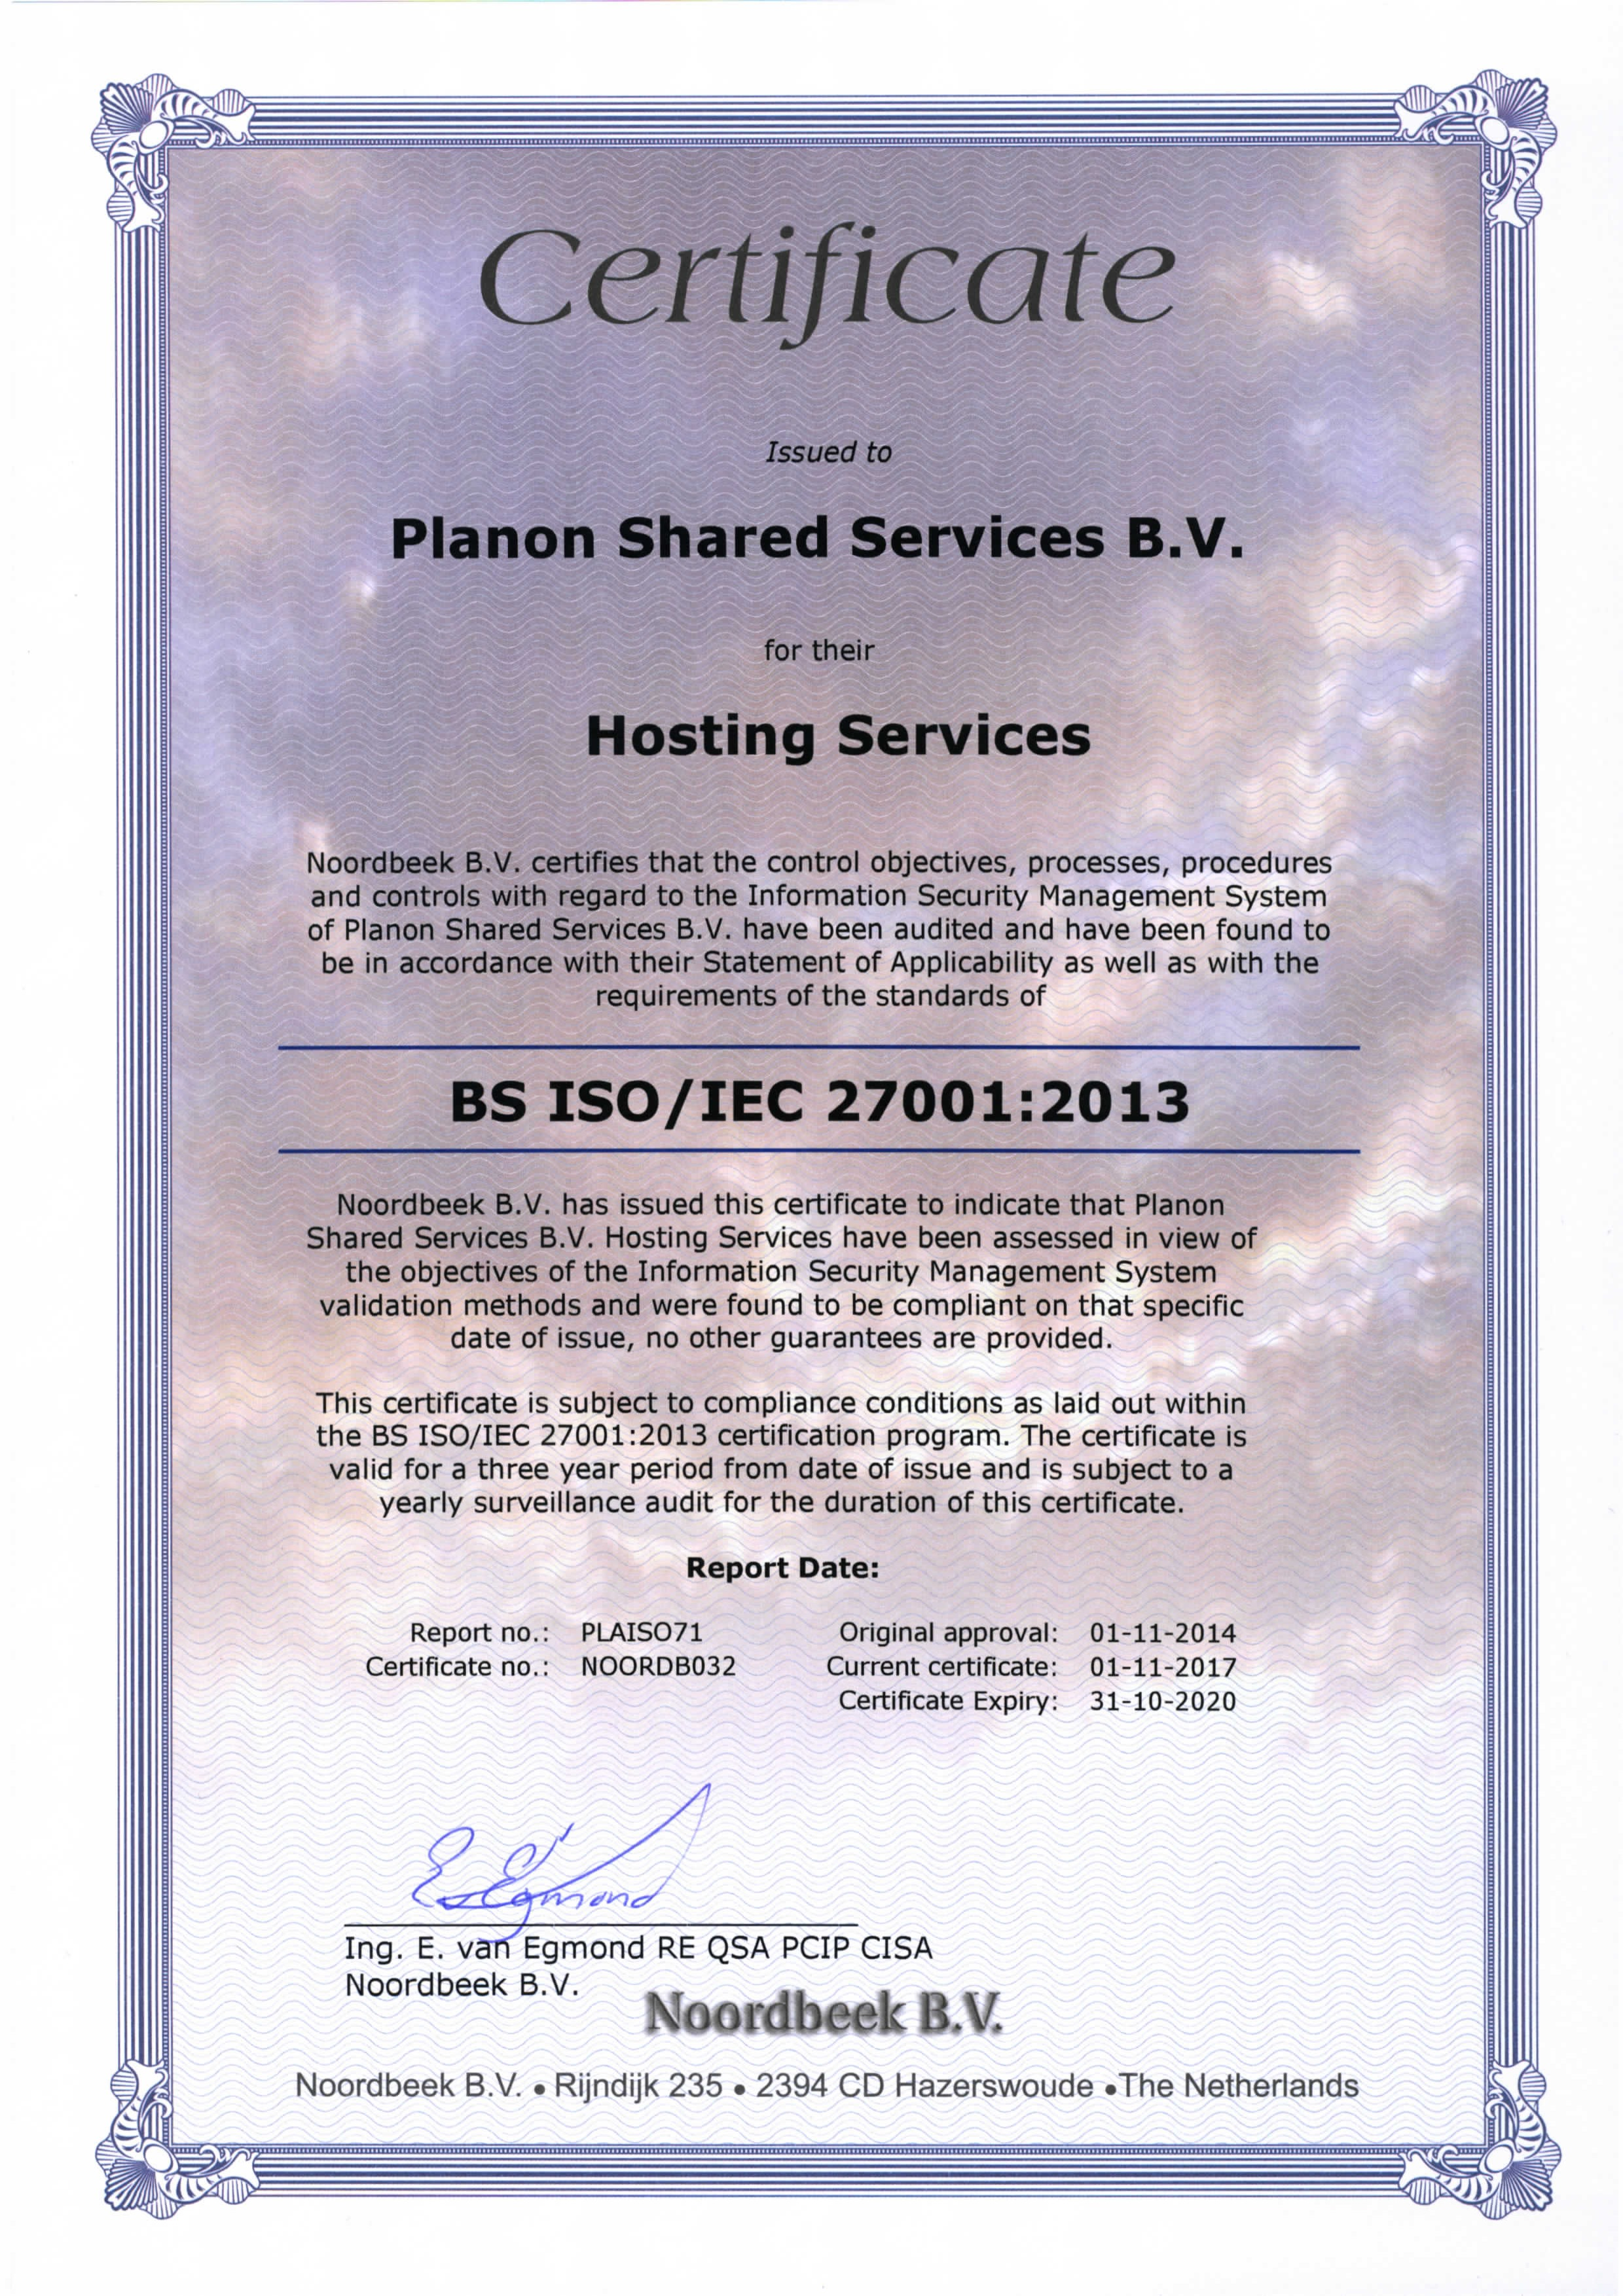 Certificate Planon Shared Services B.V.